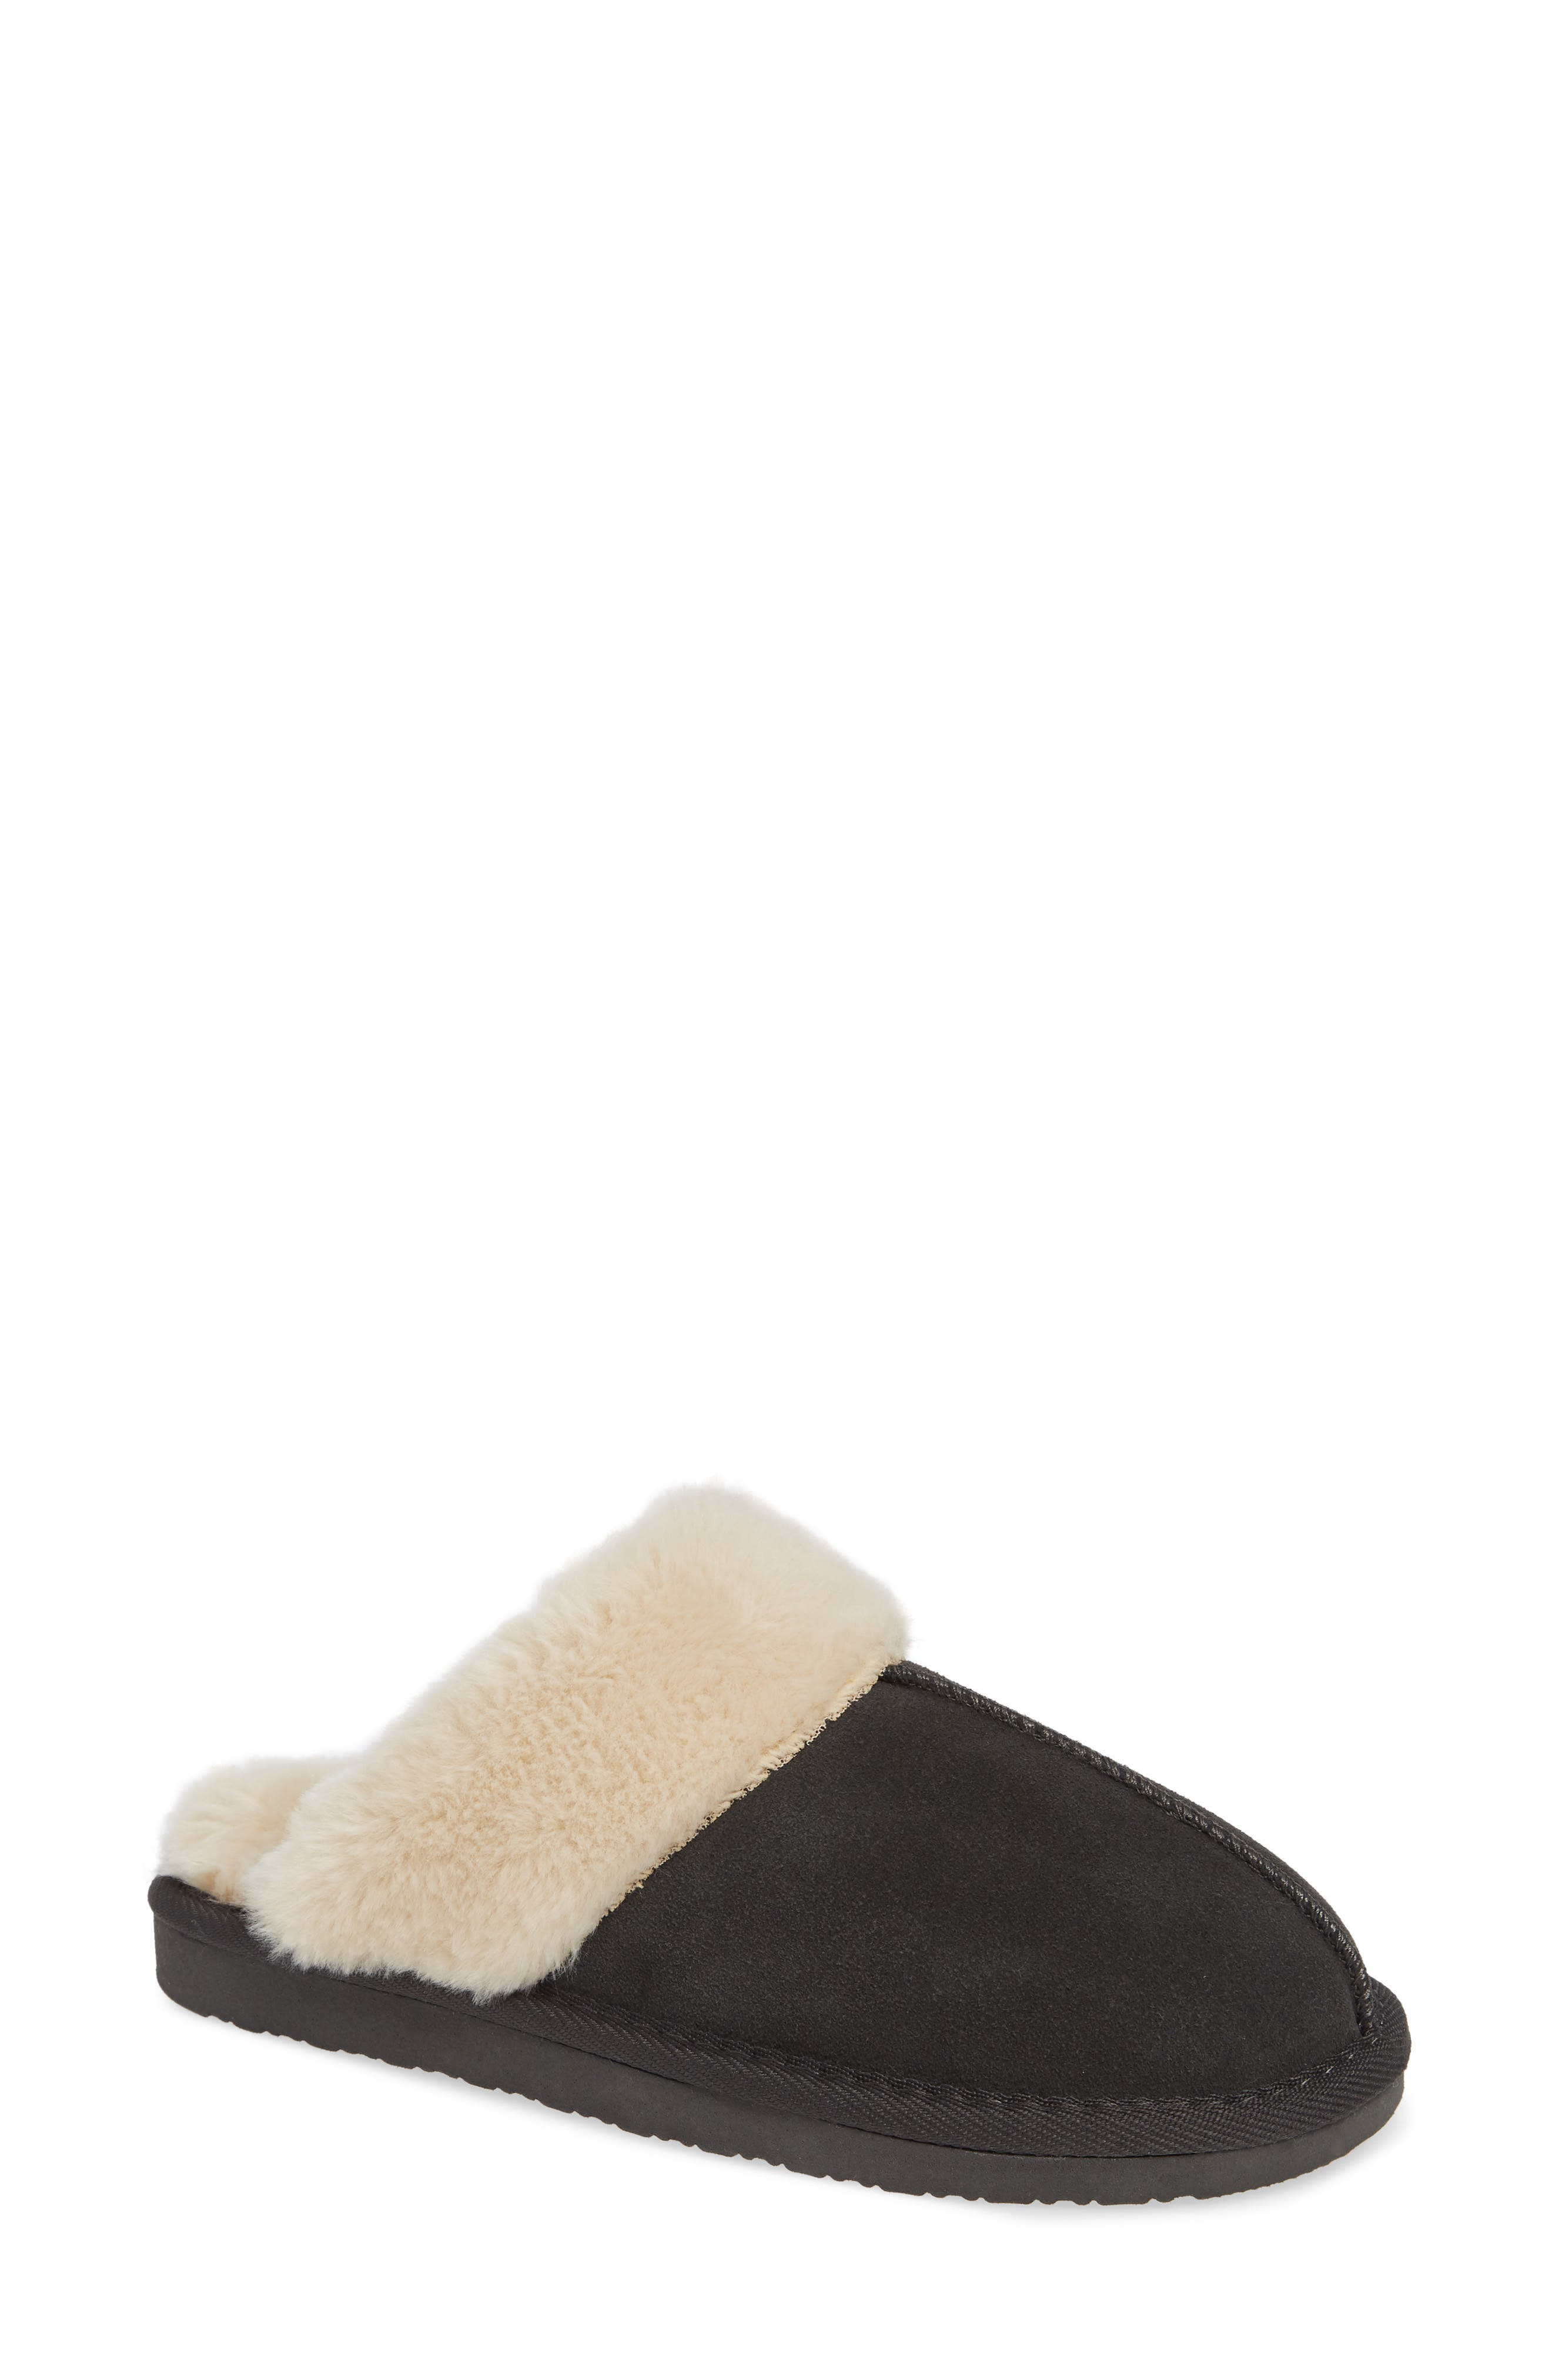 MINNETONKA Mule Slipper, Main, color, CHARCOAL SUEDE